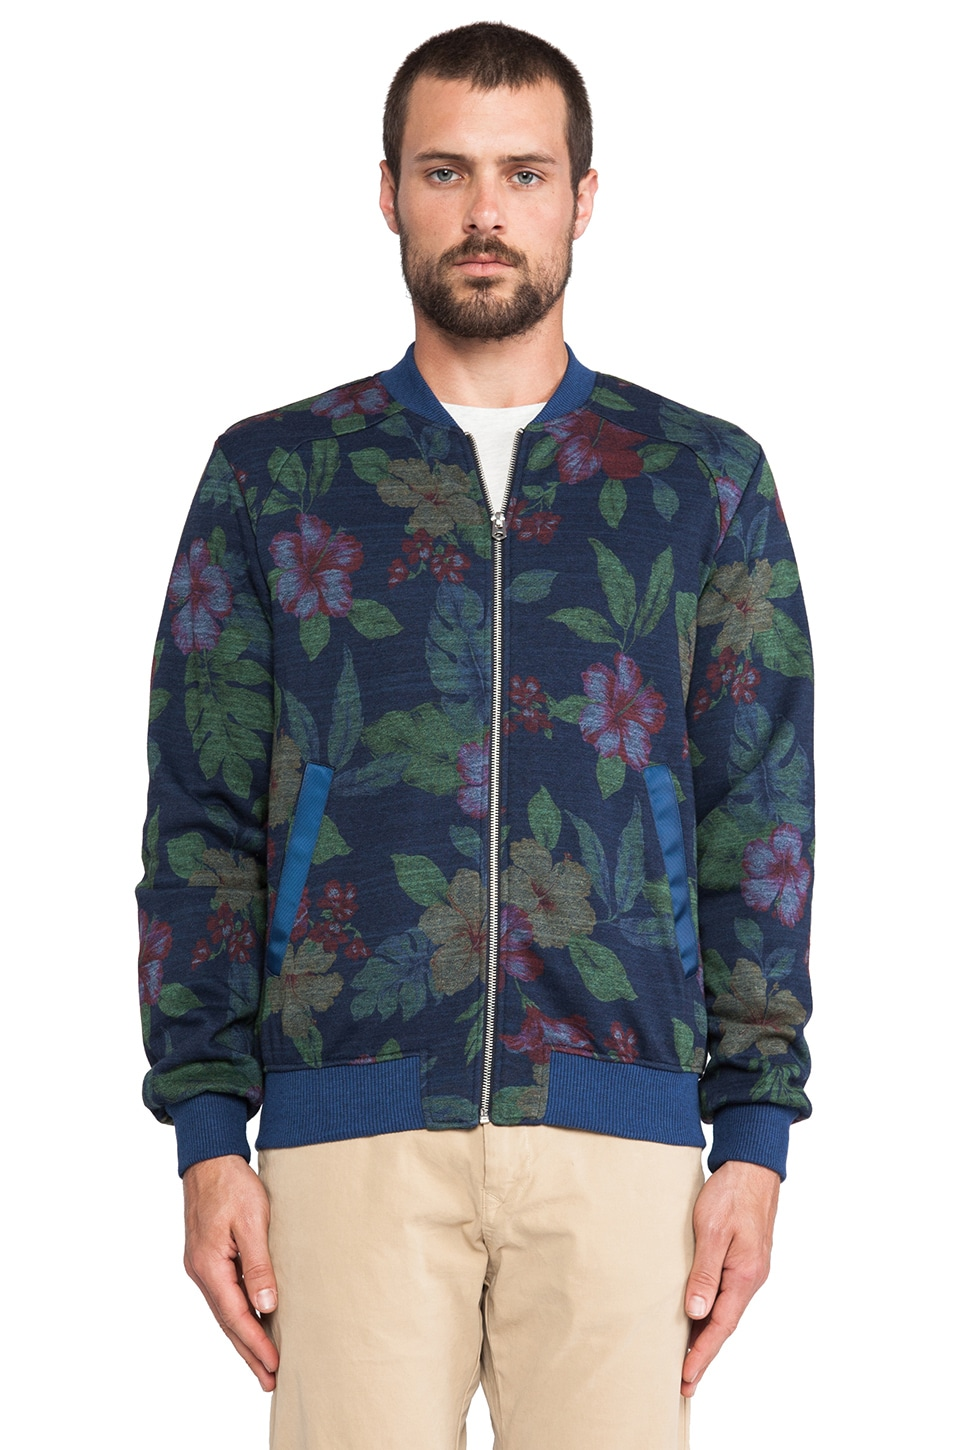 Shades of Grey by Micah Cohen Bomber in Navy Floral